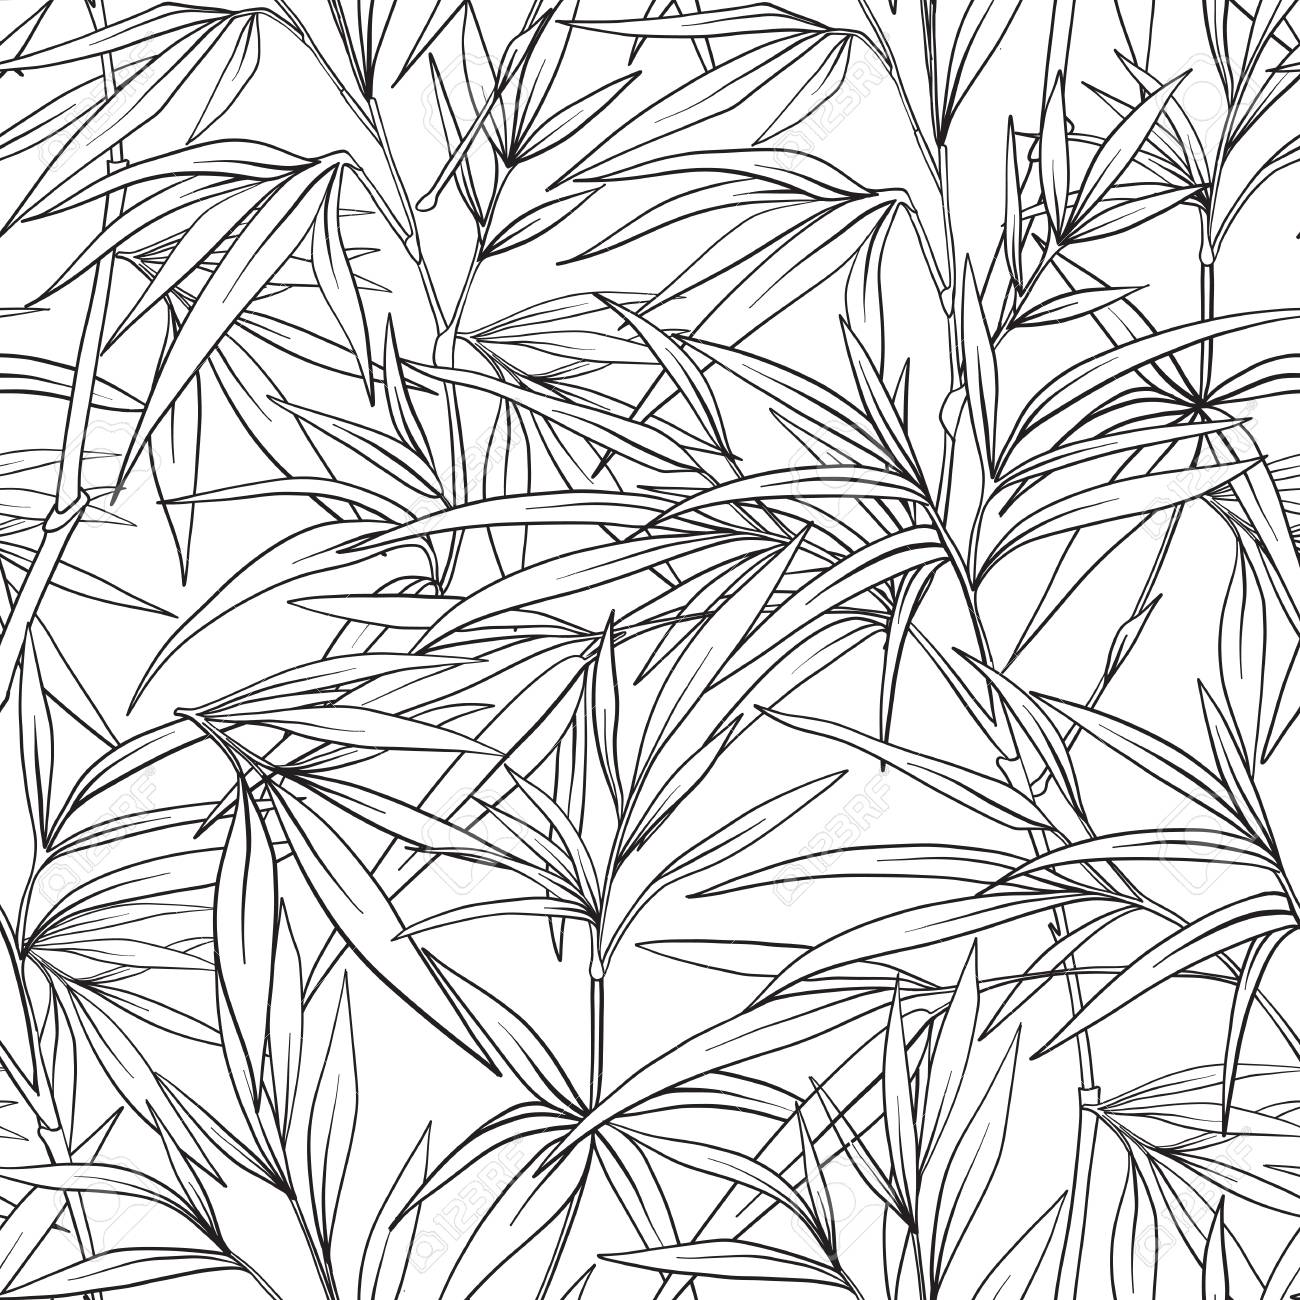 1300x1300 Seamless Pattern With Bamboo In Japanese Style. Outline Drawing